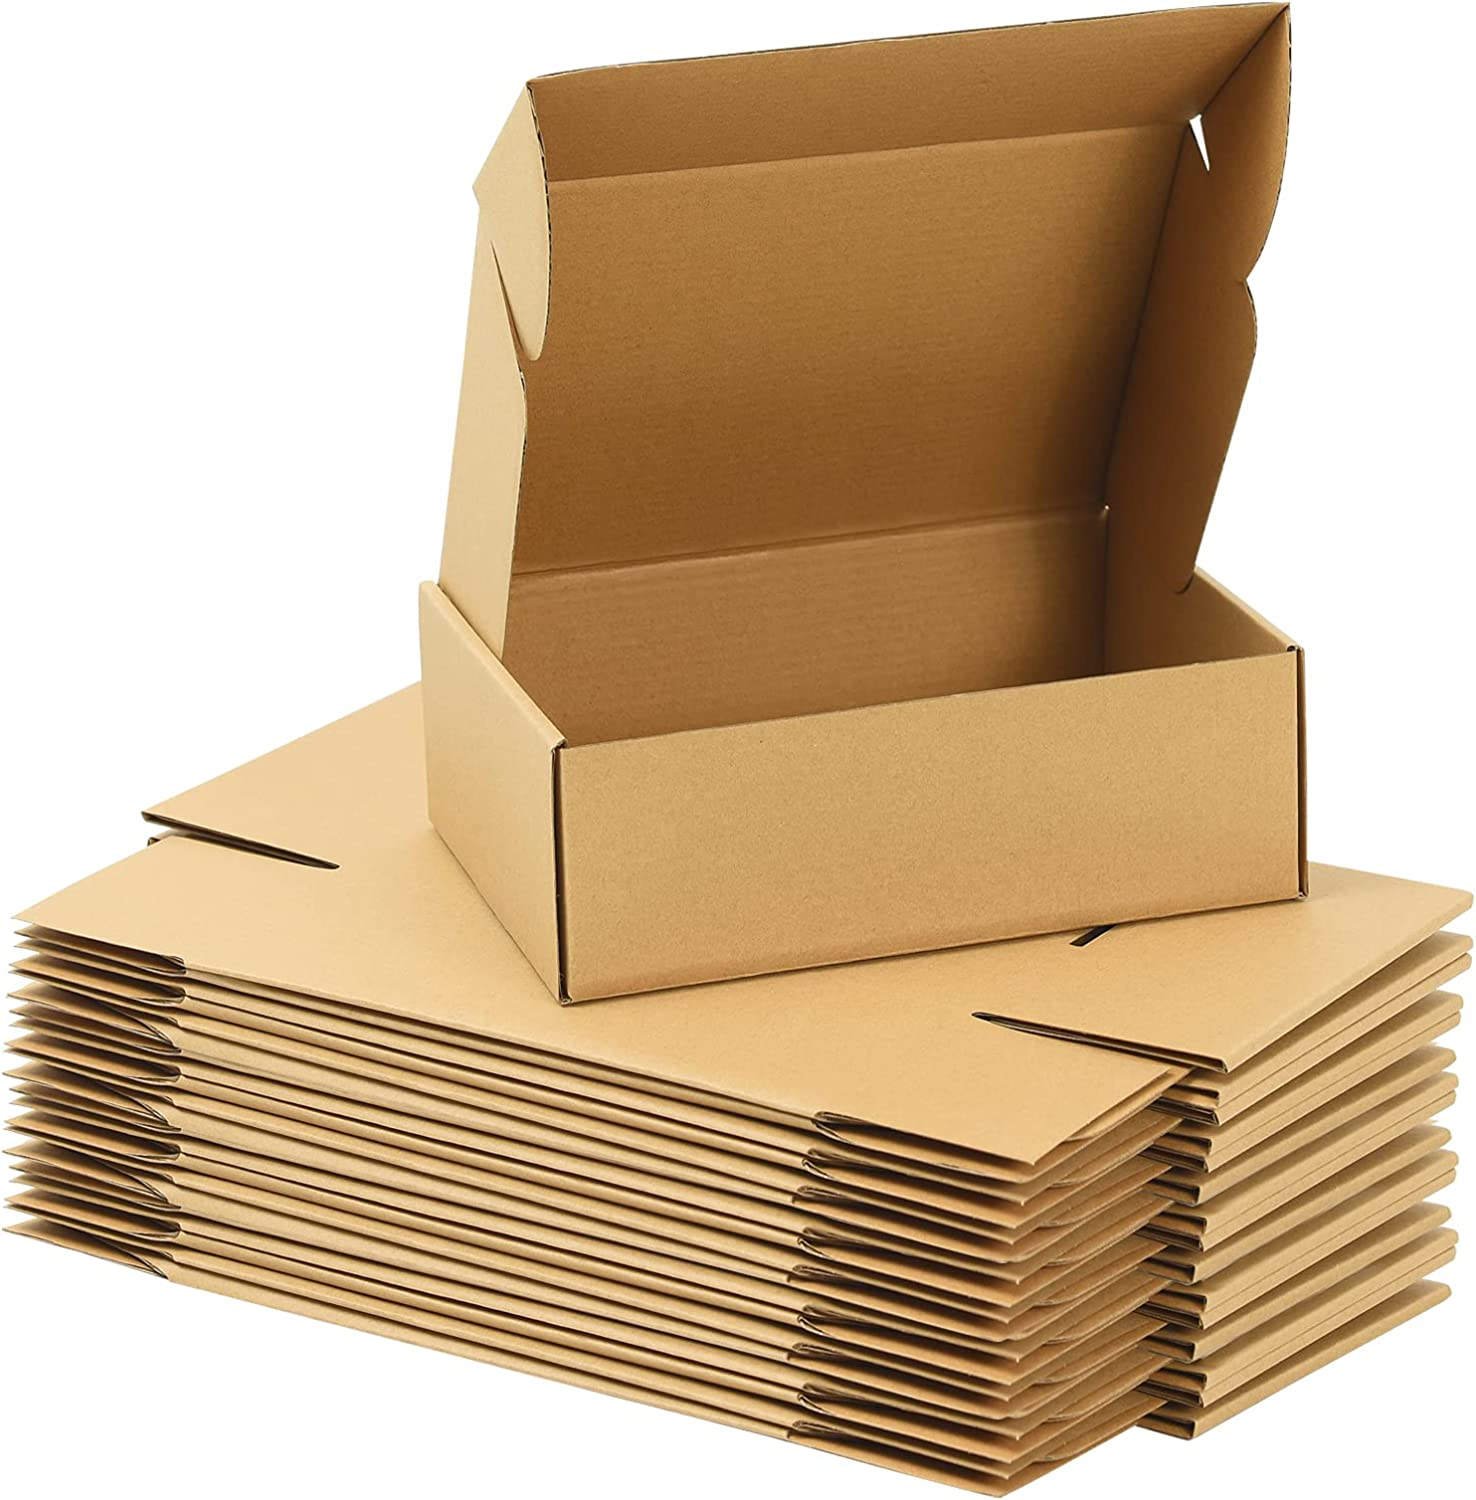 ZSZMFH 28 Pack 13x11x2 inches for Genuine Free Shipping Boxes Business Inventory cleanup selling sale Small